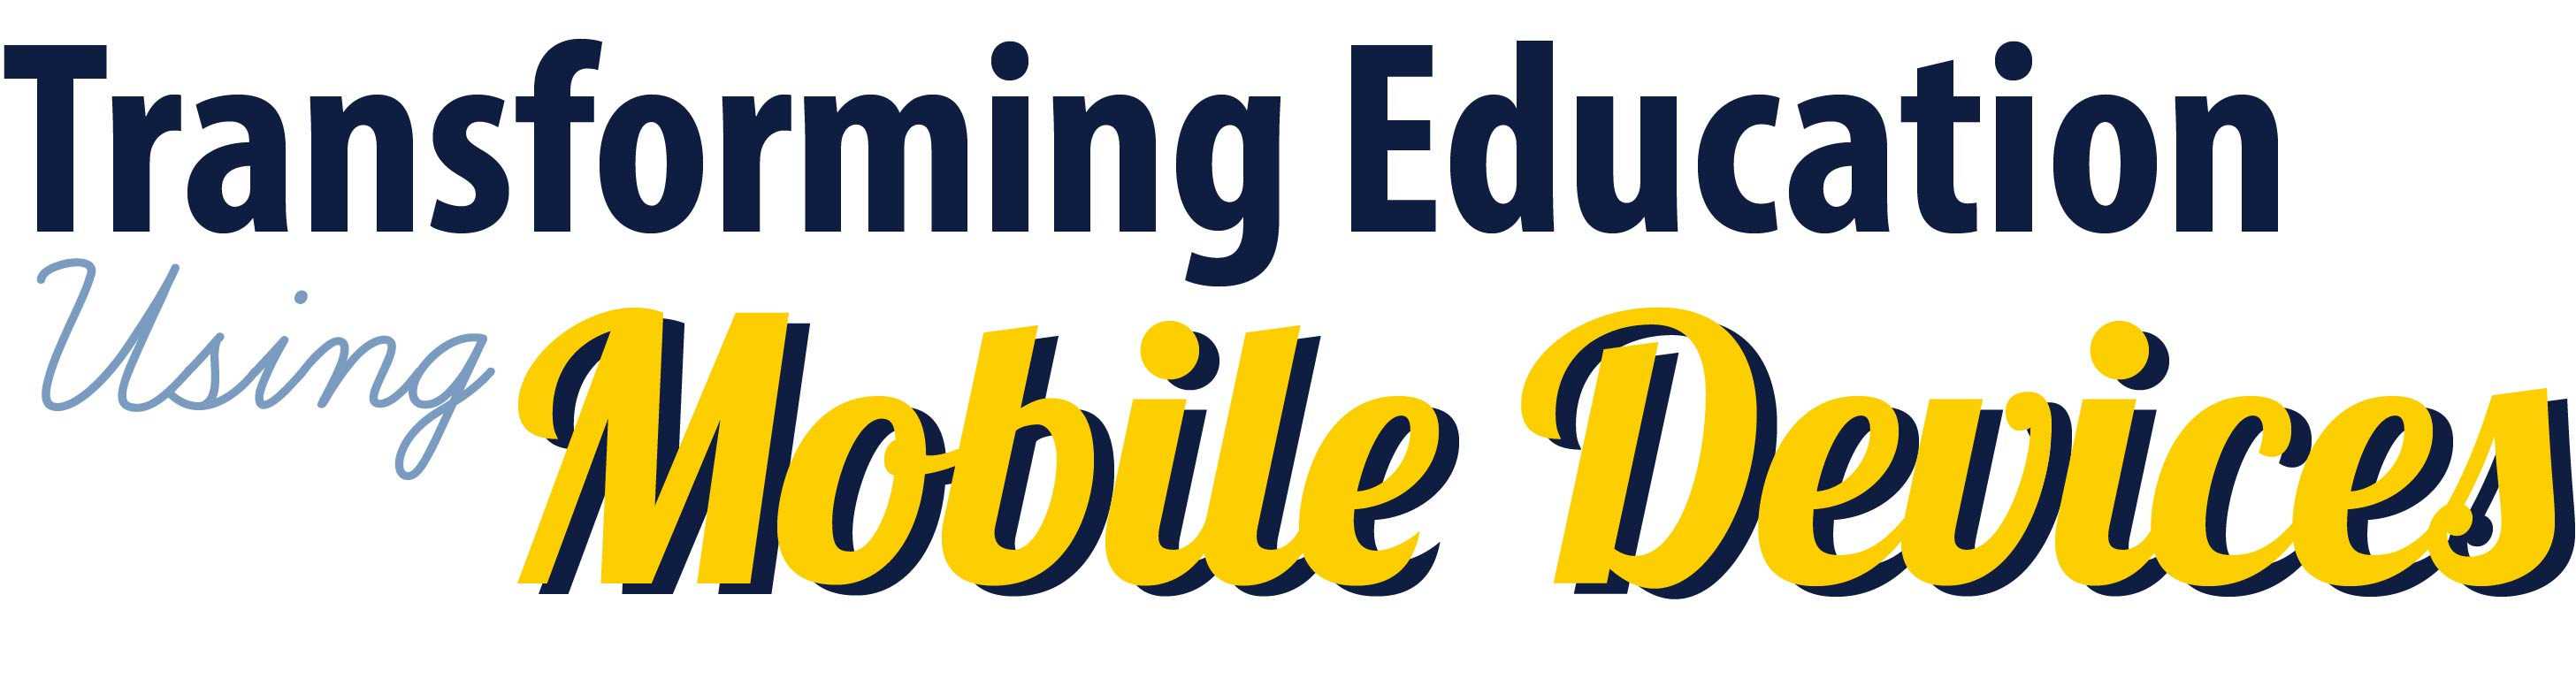 transforming education using mobile devices